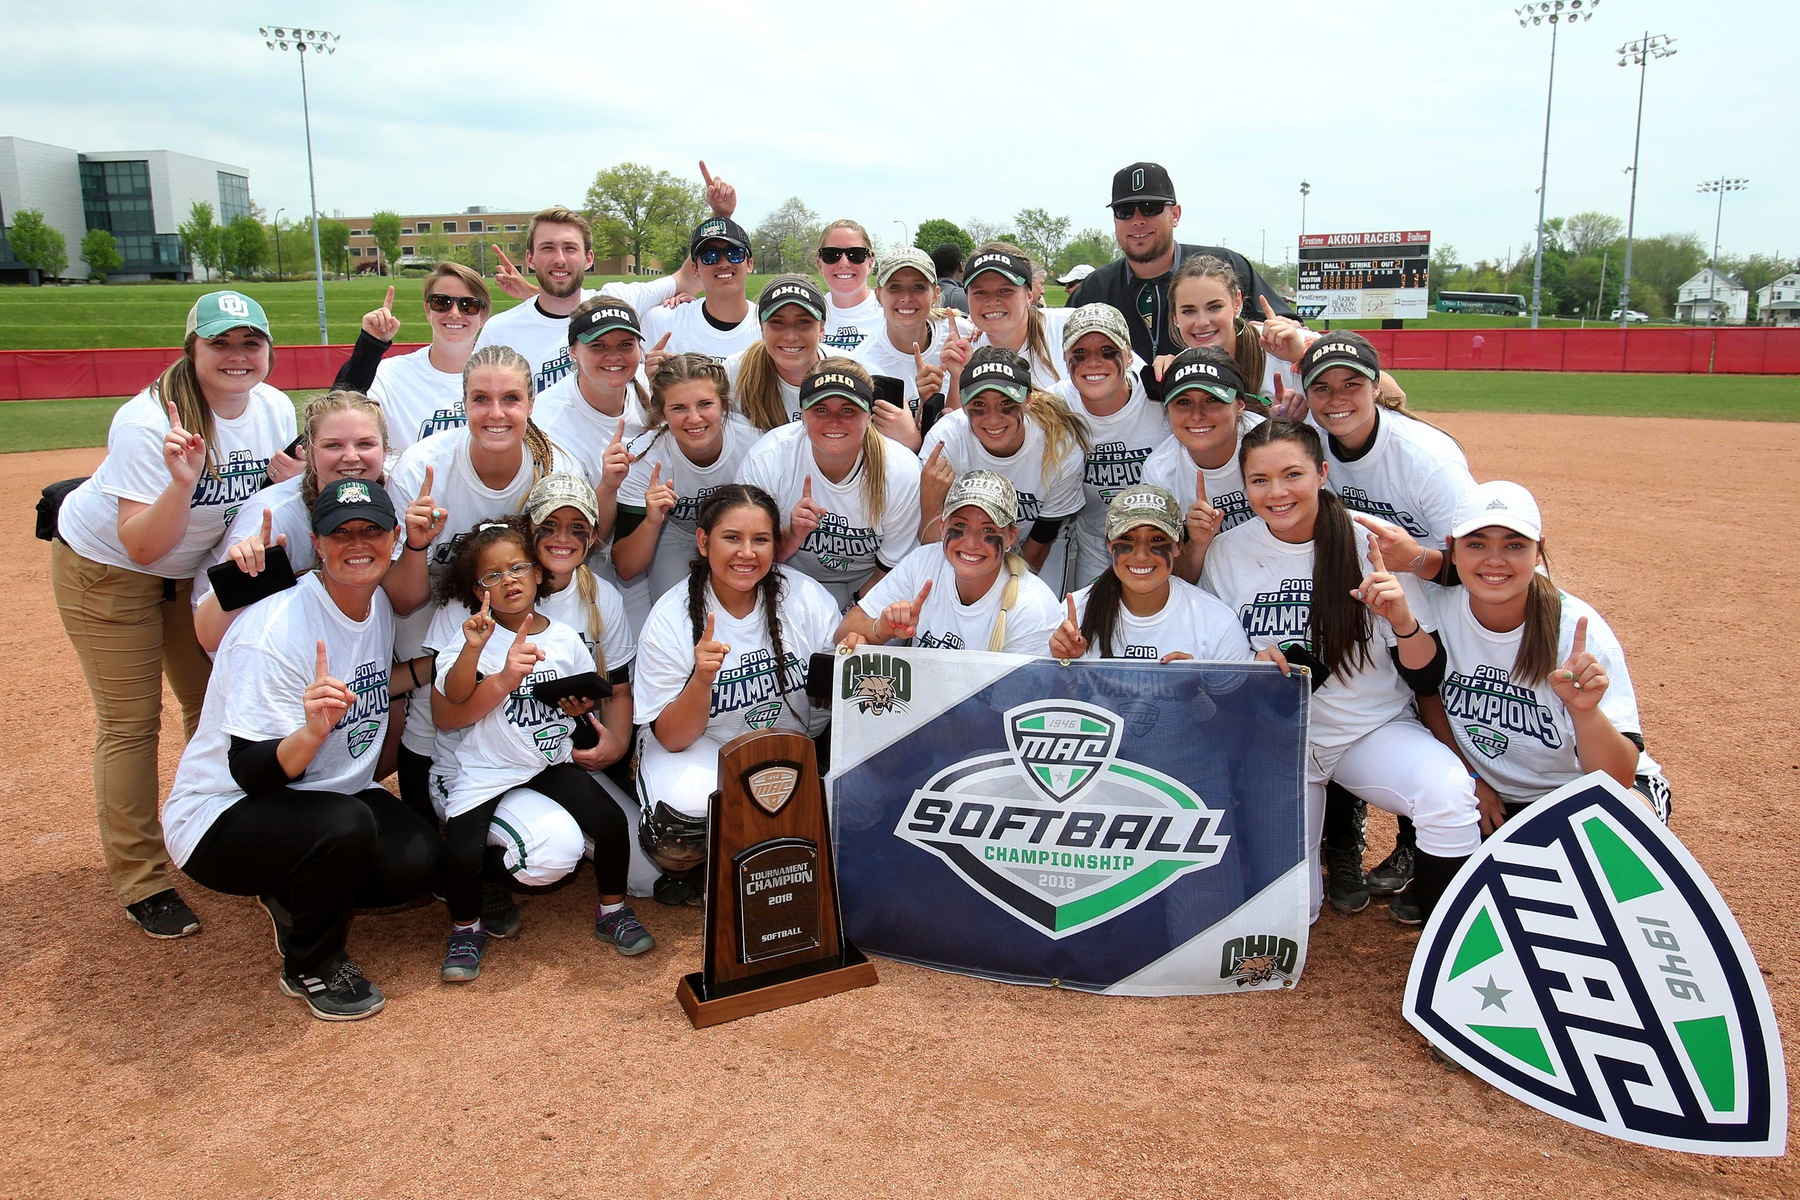 MISSION ACCOMPLISHED: Ohio Softball Clinches MAC Title and Trip to NCAA Tournament